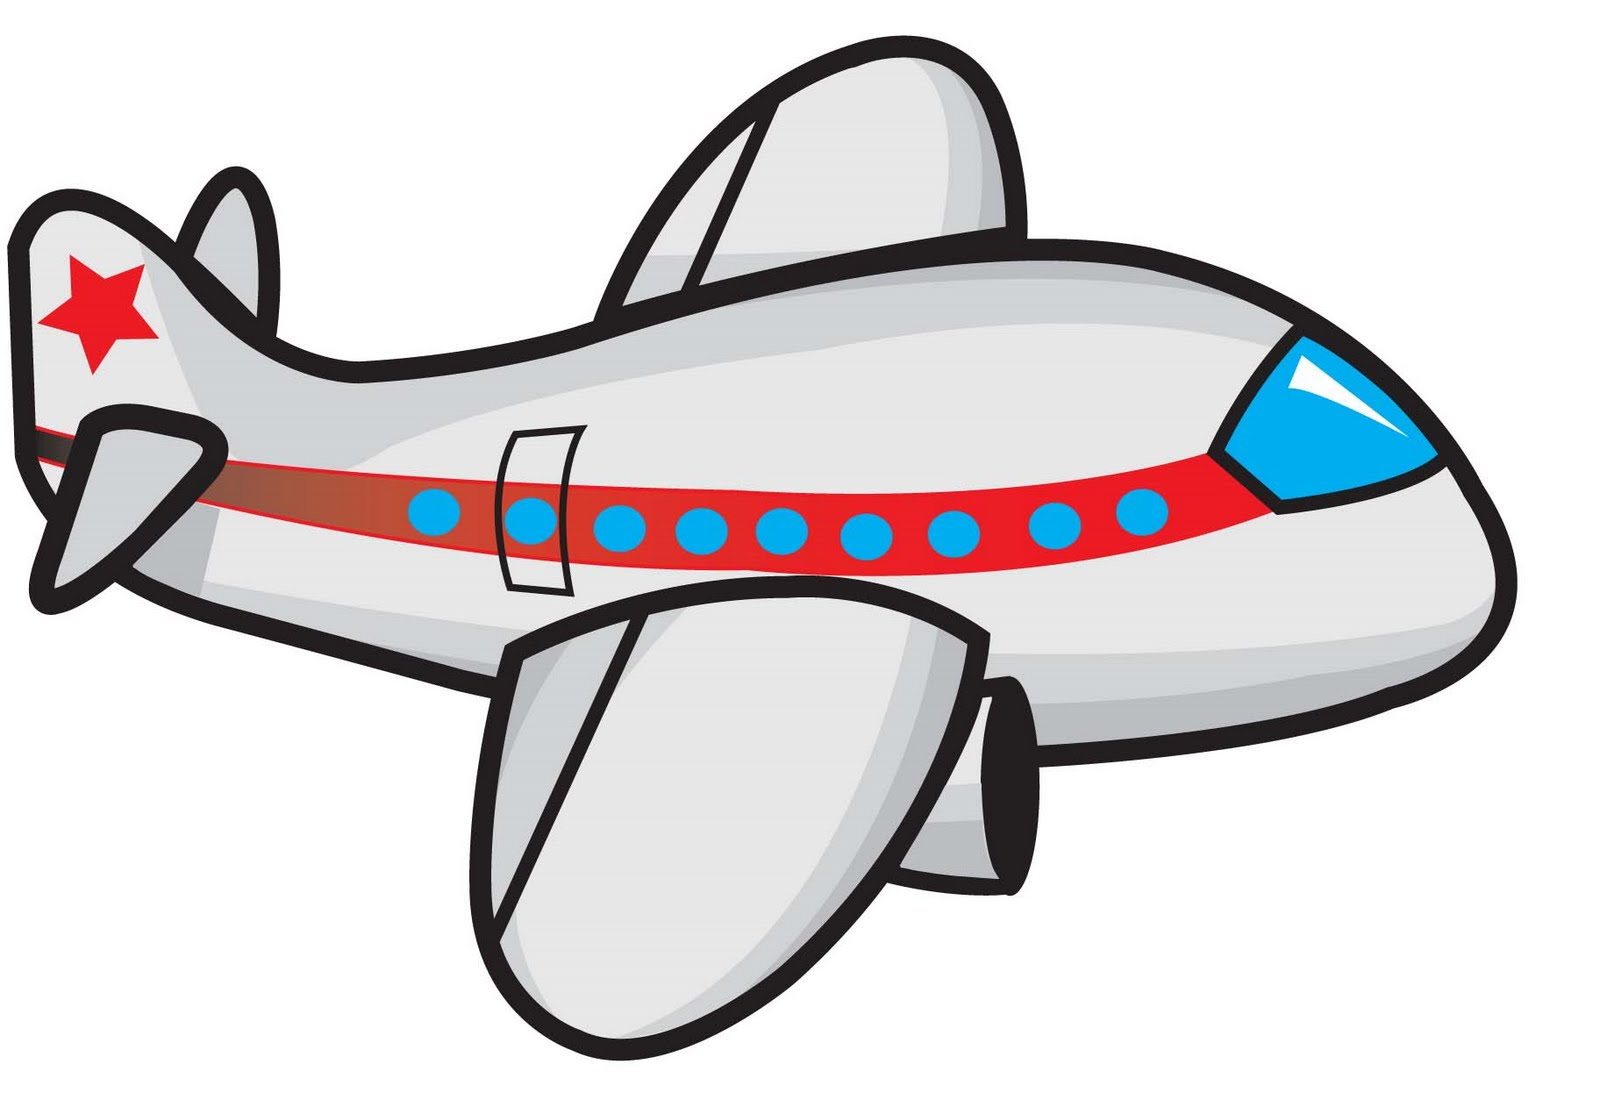 1600x1100 Cartoon Airplane Clipart